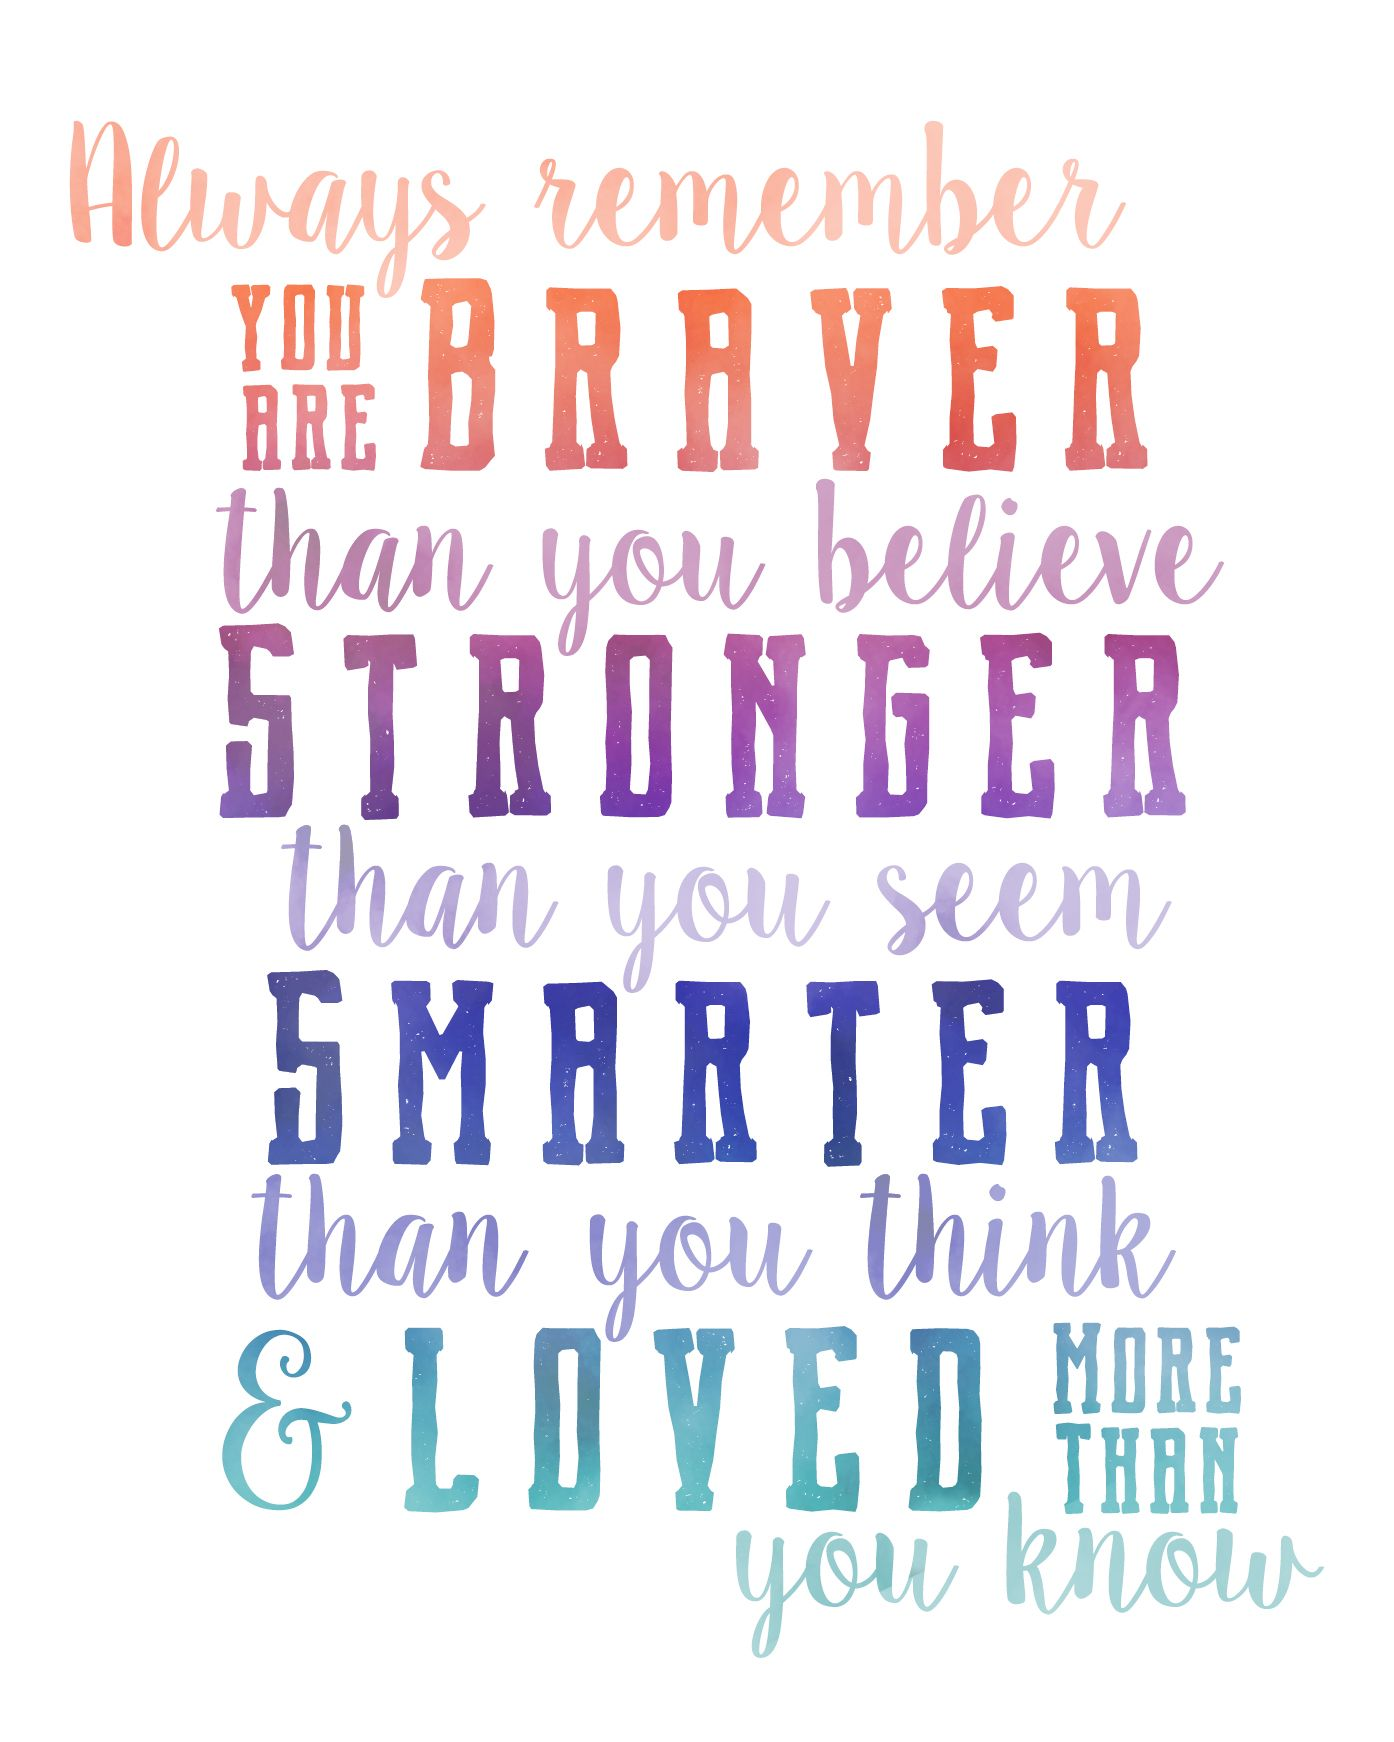 Always Remember, you are BRAVER than you believe, STRONGER